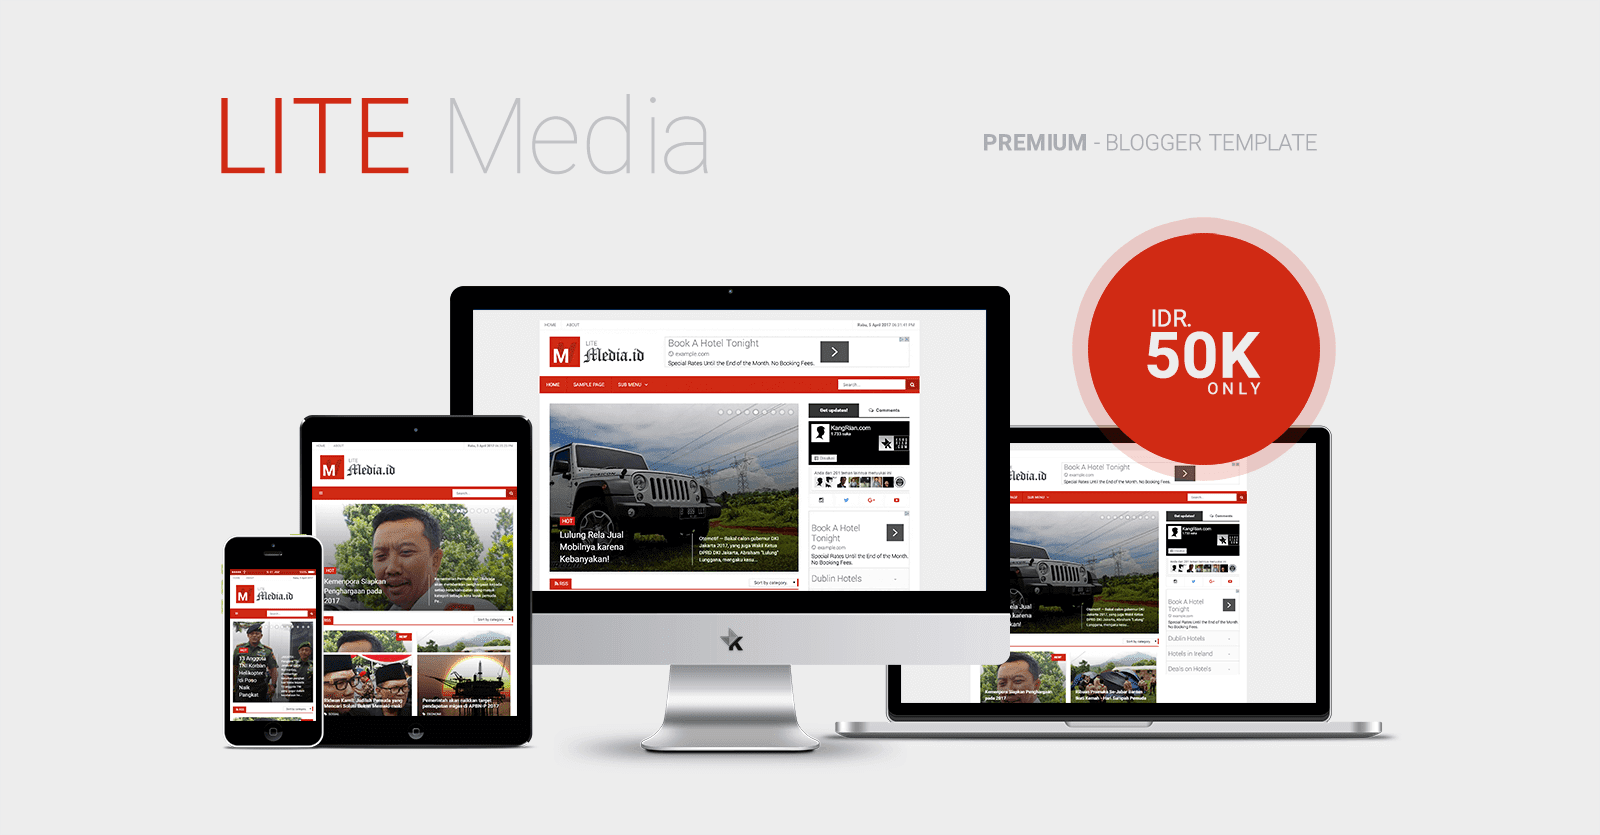 Lite Media - Premium Blogger Template